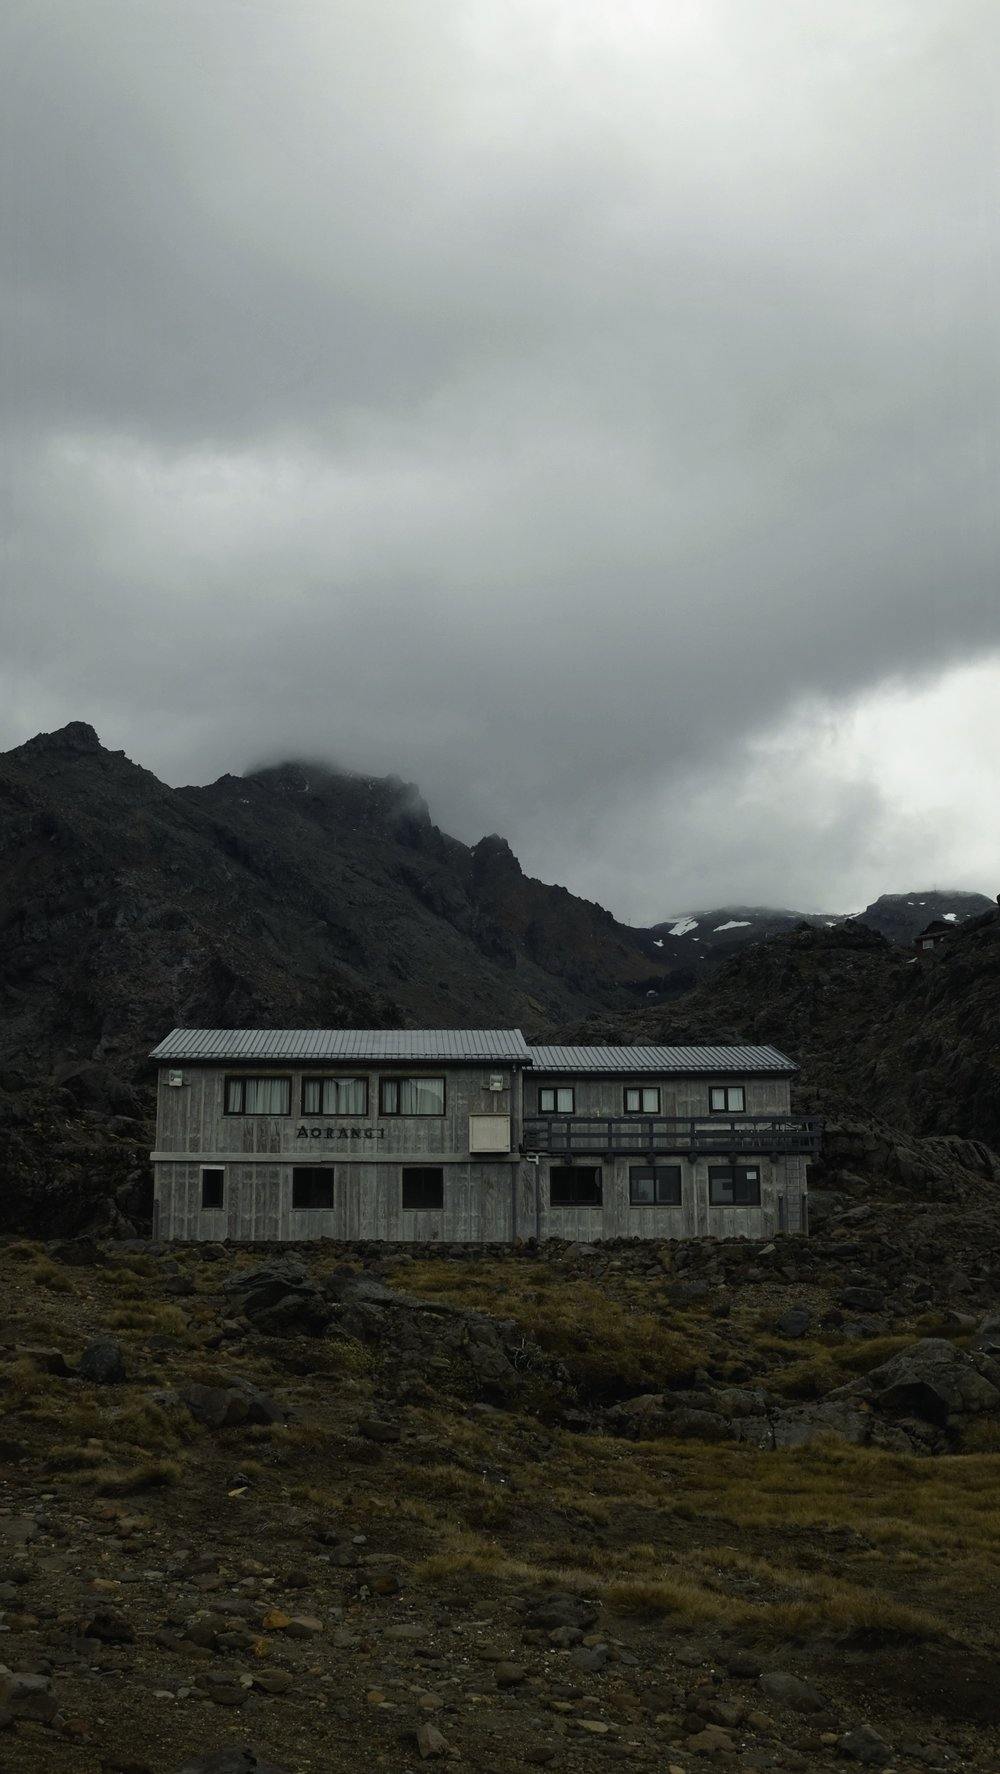 Waiting out the storm by visiting the slopes of Ruapehu.